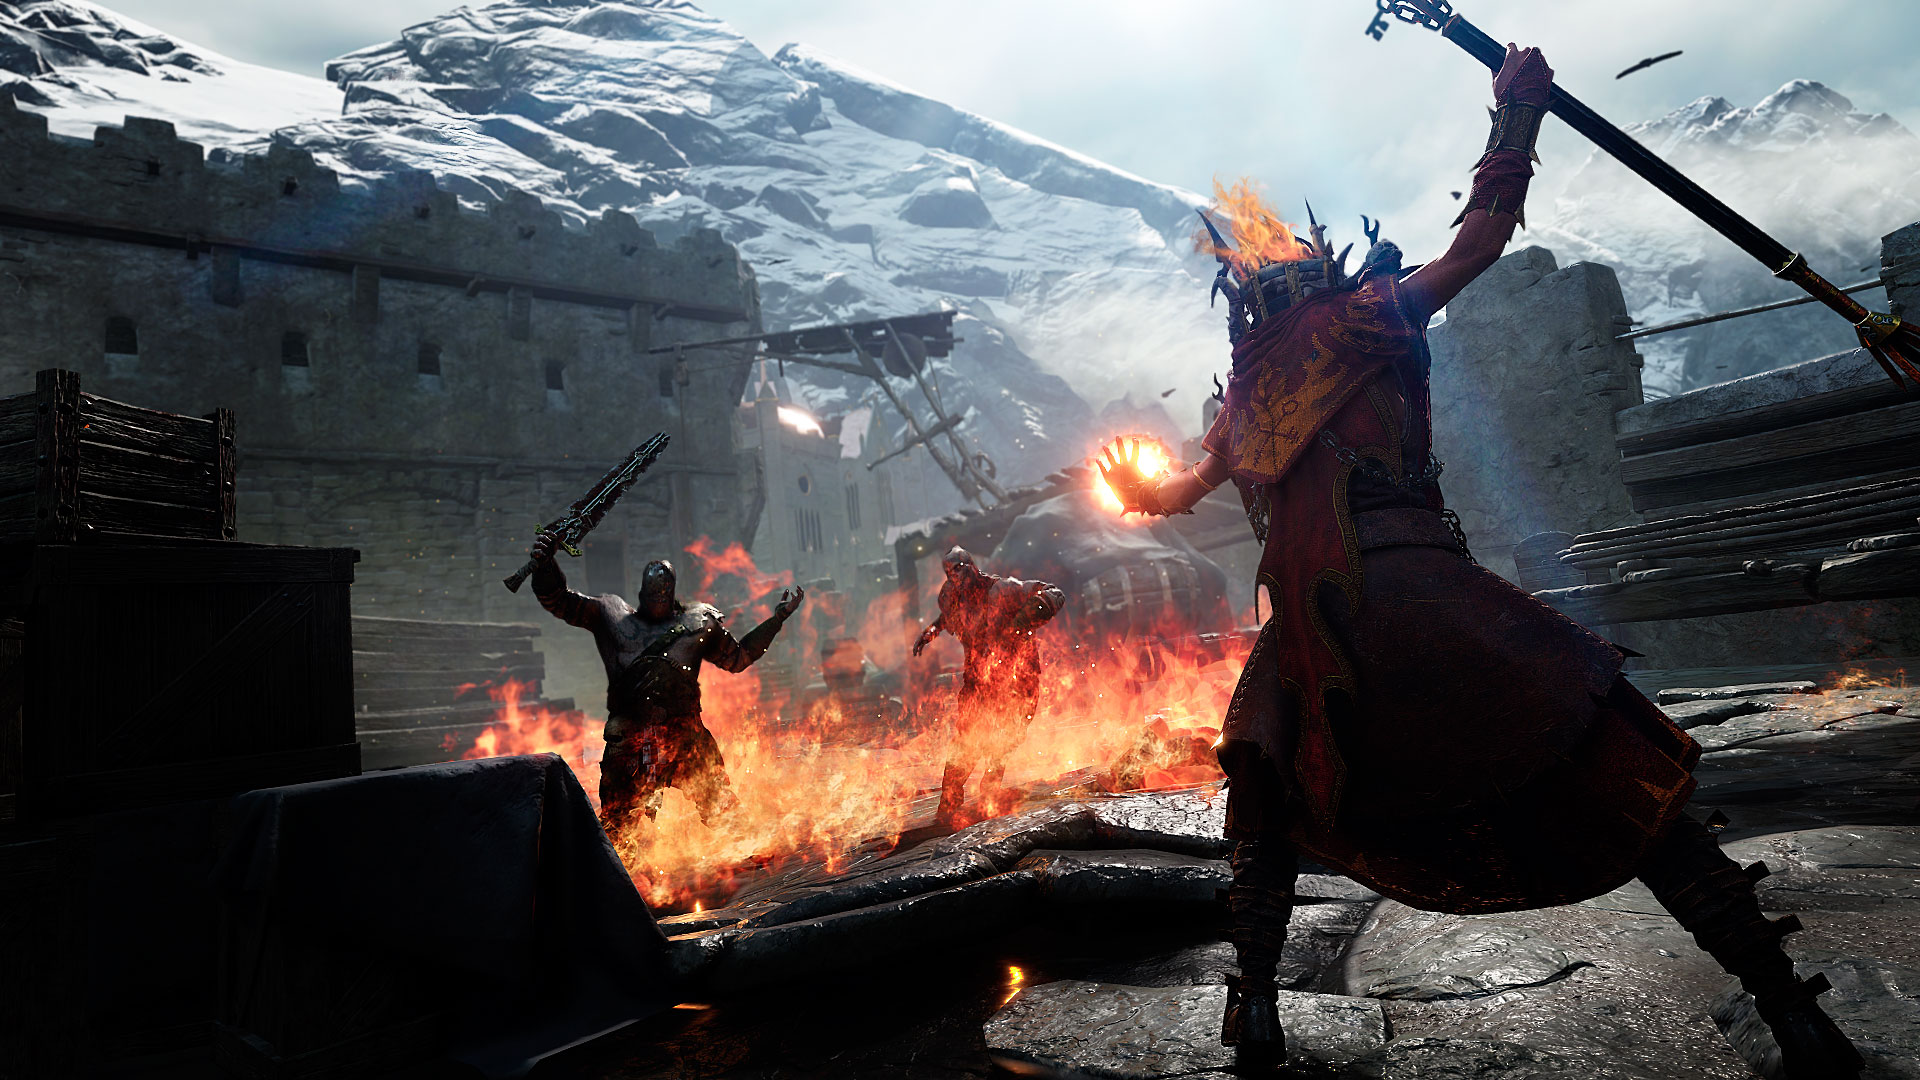 Vermintide 2 tome and grimoire locations guide | PC Gamer